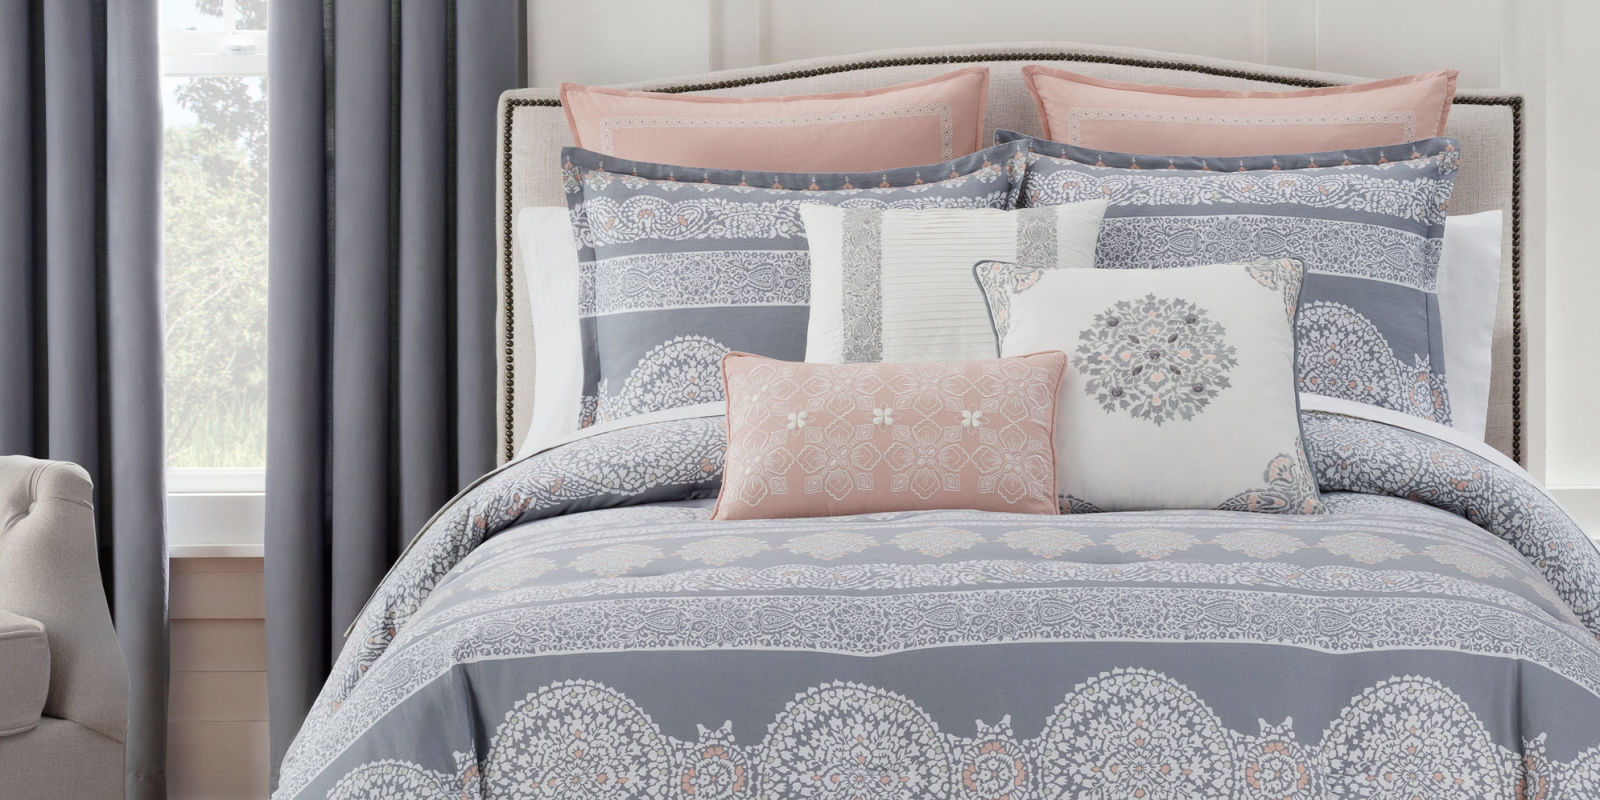 Enter Our Sweepstakes To Win A Comforter Set And Pillows